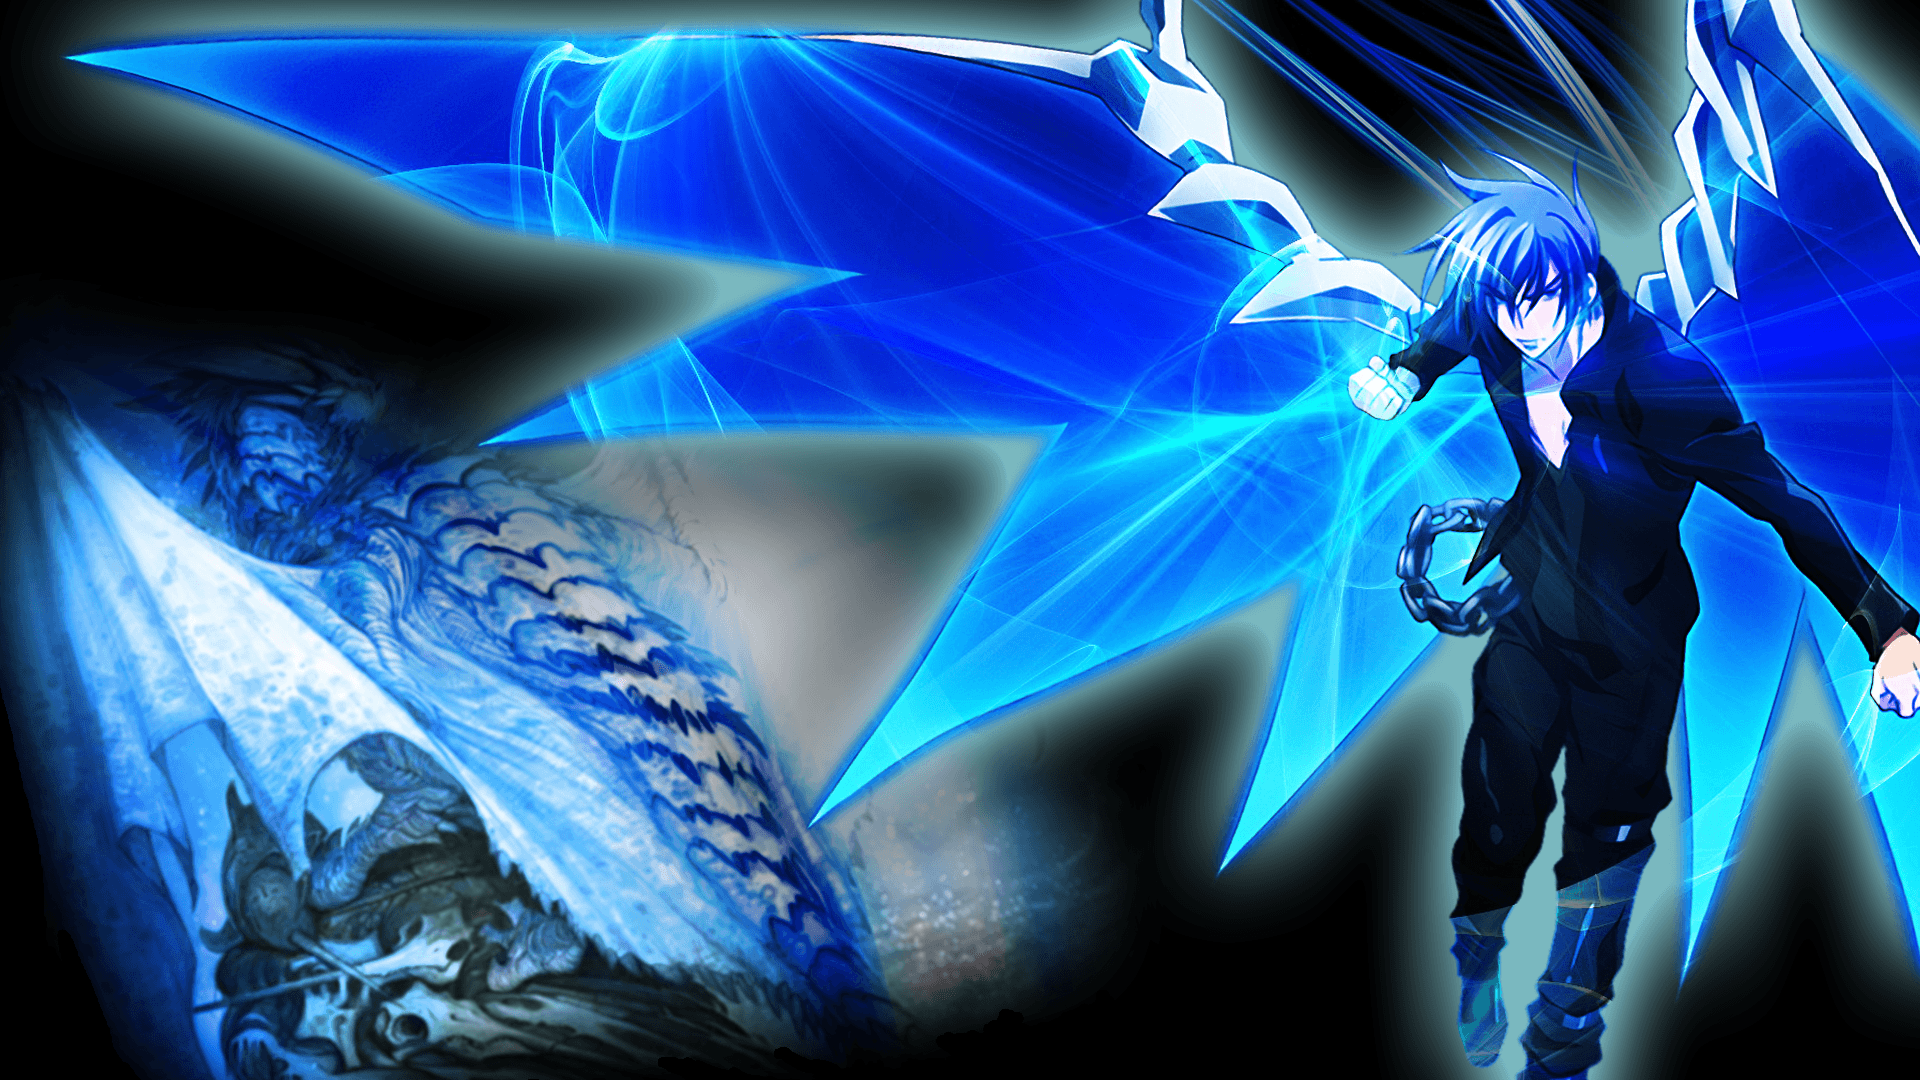 White Dragon Emperor Wallpaper Let's settle this once and for all, riser. white dragon emperor wallpaper